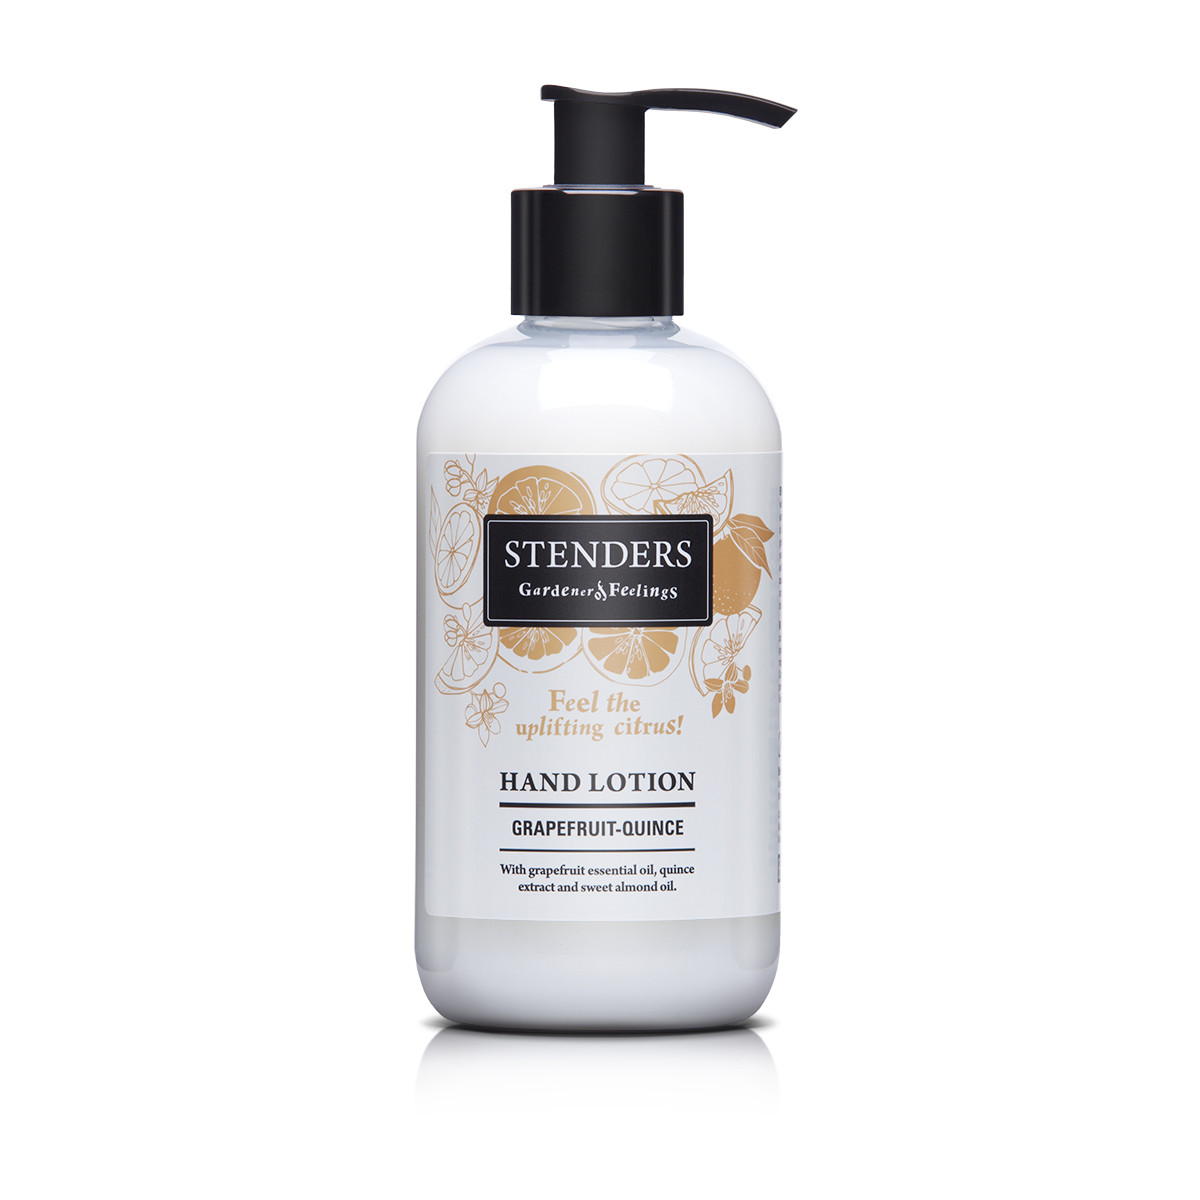 Stenders Bath And Body Care Cosmetics Grapefruit Quince